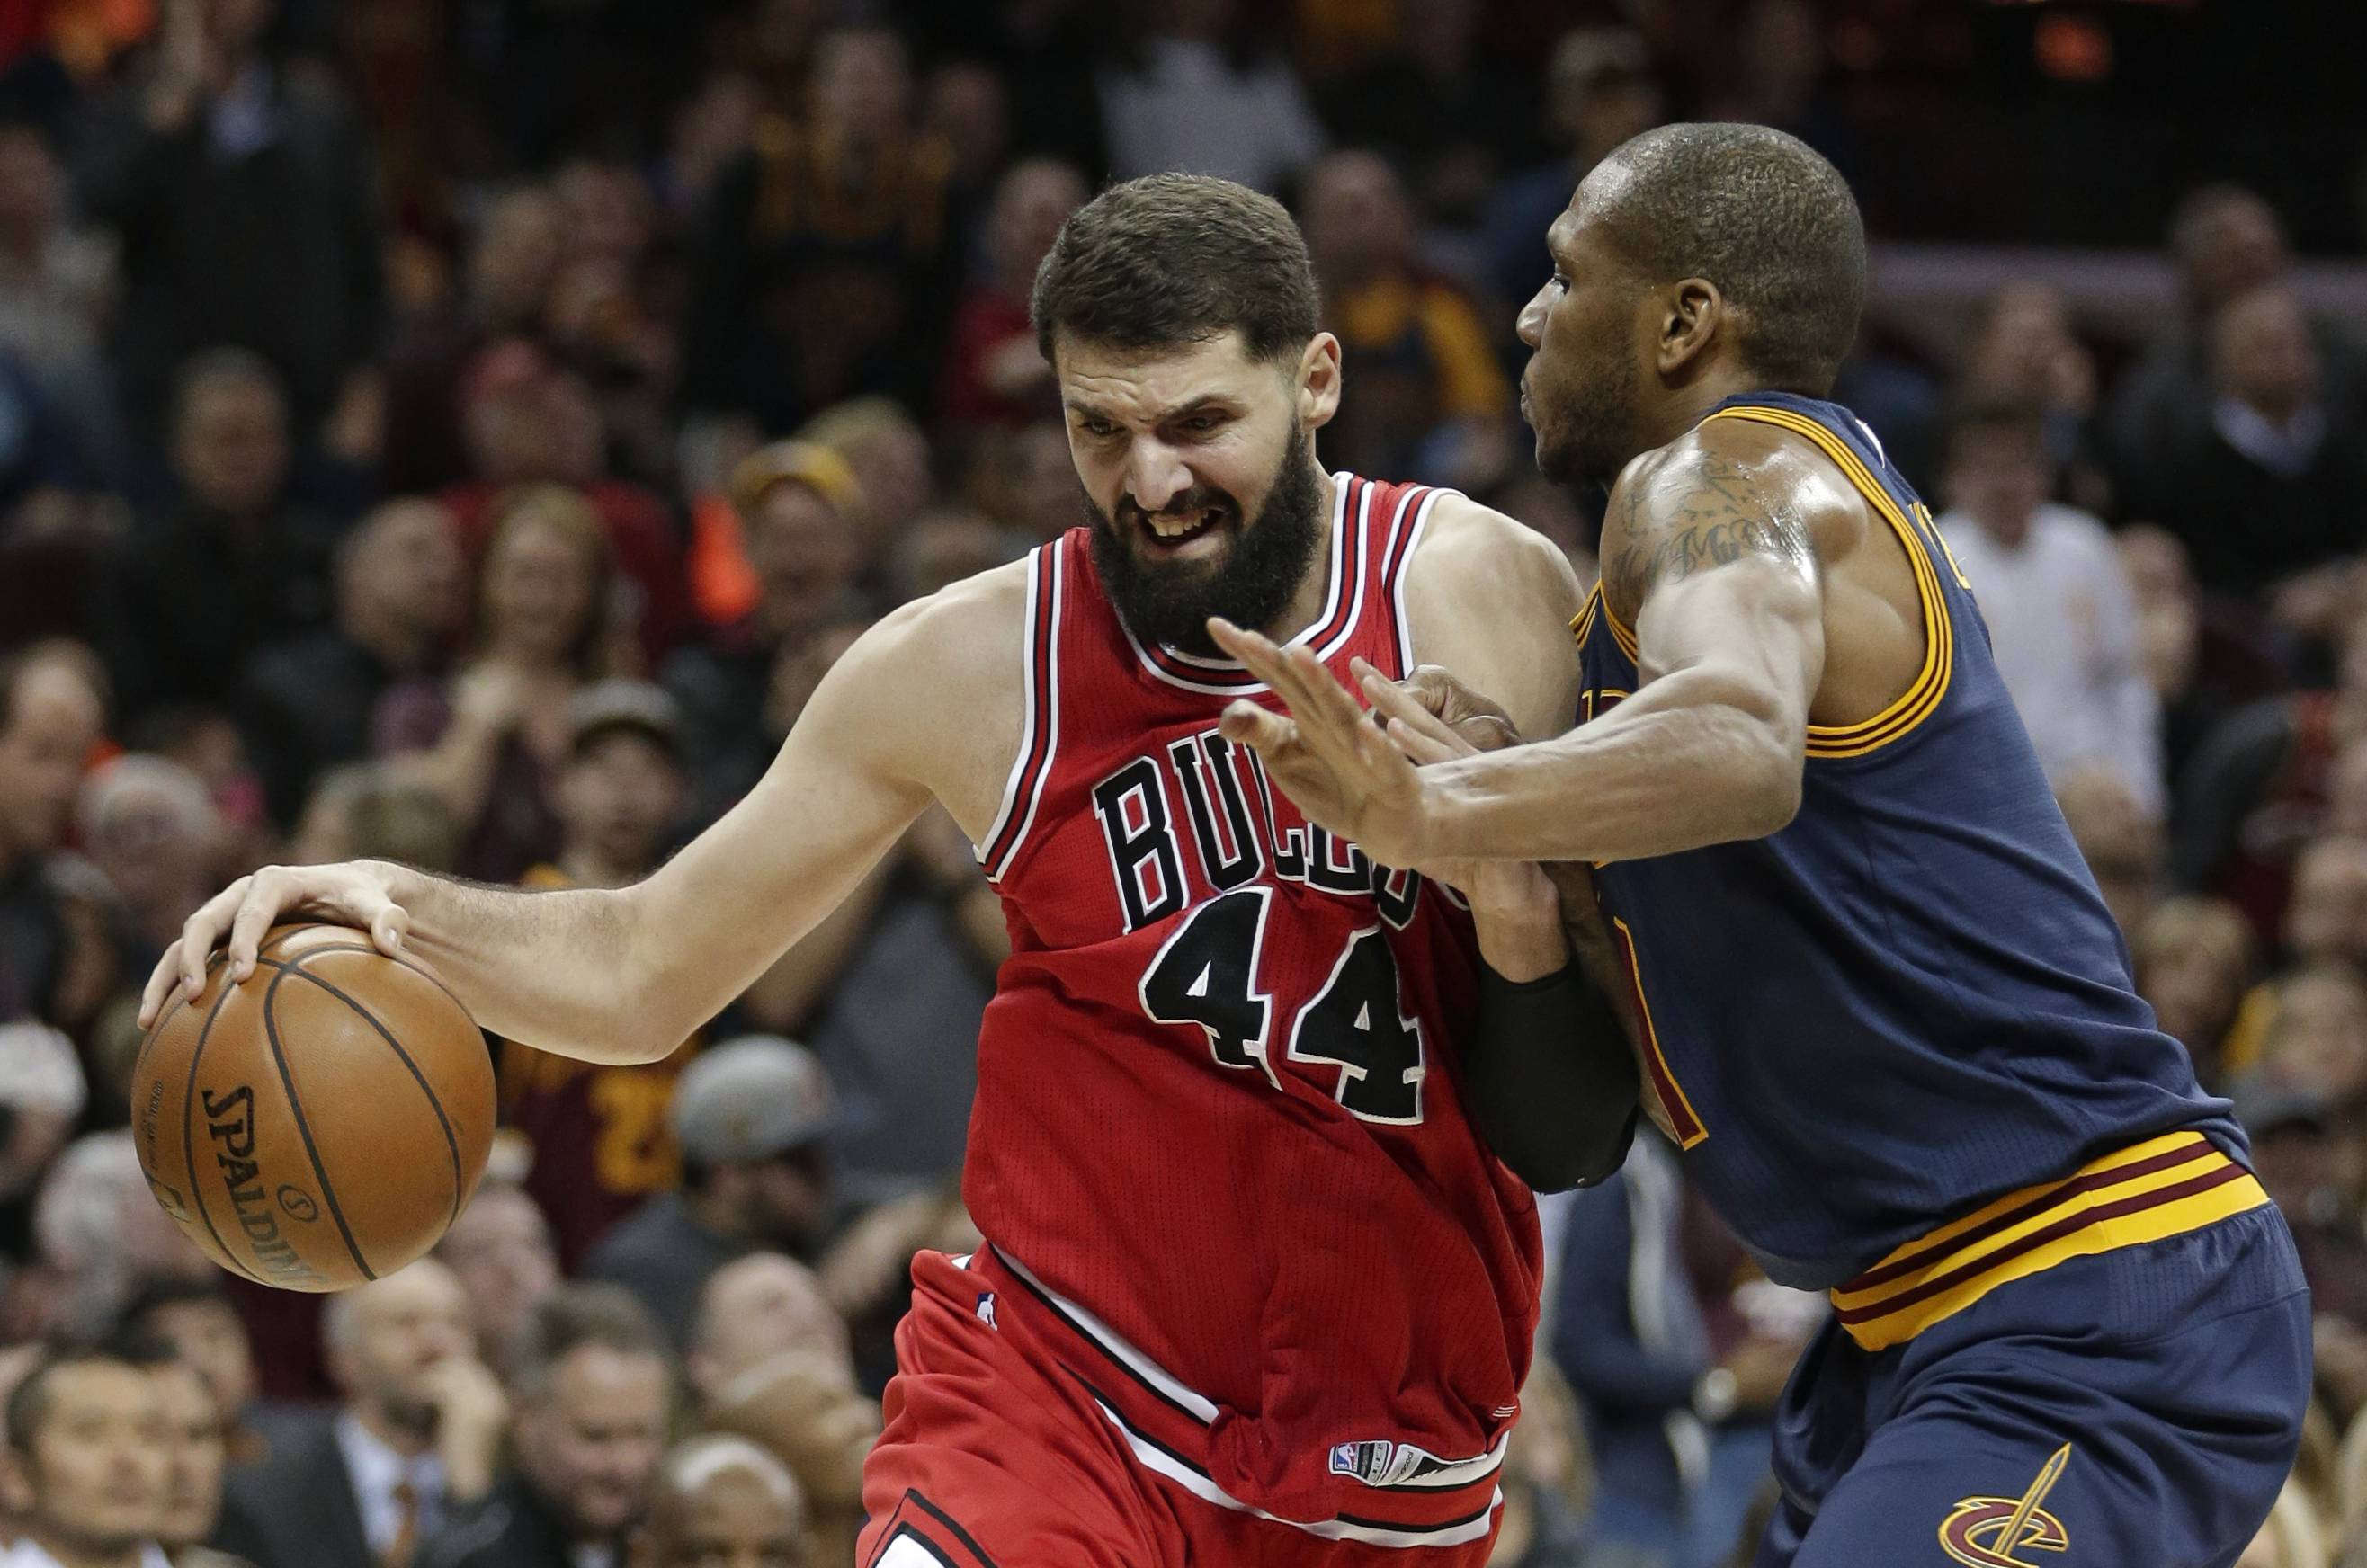 "Chicago Bulls' Nikola Mirotic recorded his fifth double-double of the season Saturday against Cleveland with 14 points and 10 rebounds. Mirotic said he was glad to not be traded away at deadline. ""This is the team I love and the team I want to play for,"" he said."